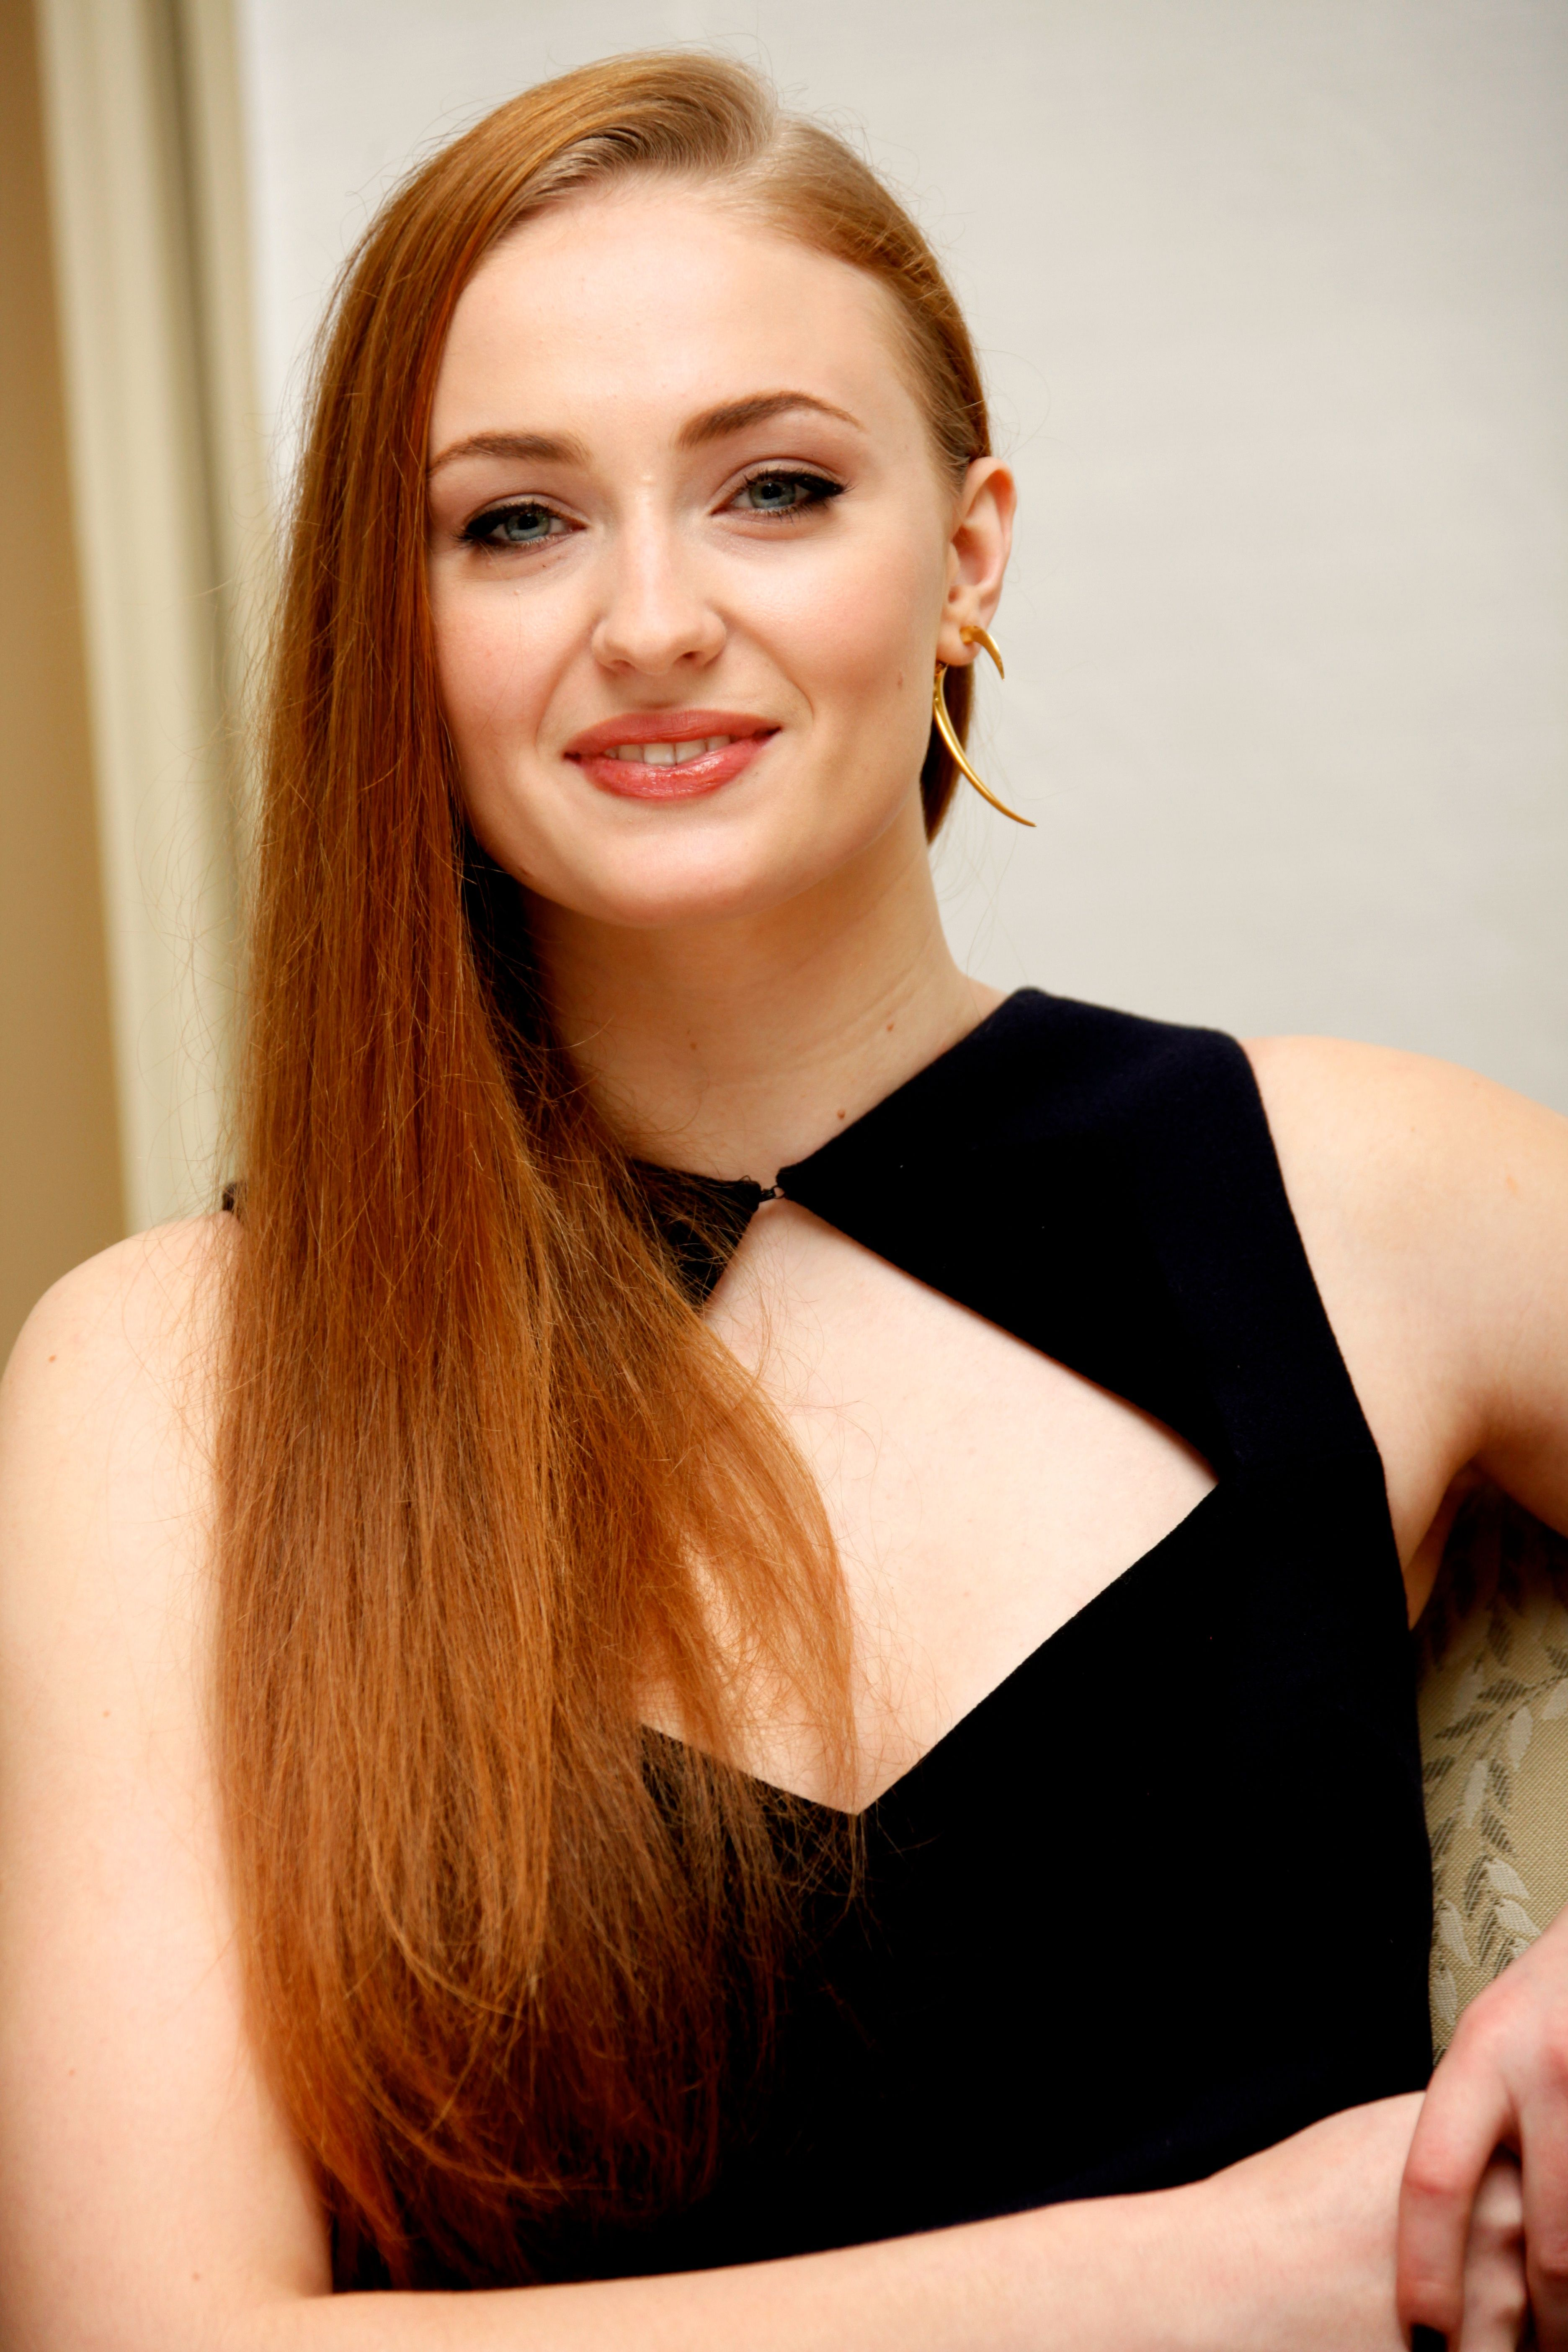 sophie turner модельsophie turner vk, sophie turner 2017, sophie turner 2016, sophie turner gif hunt, sophie turner png, sophie turner game of thrones, sophie turner gallery, sophie turner twitter, sophie turner jean grey, sophie turner model, sophie turner height 2016, sophie turner style, sophie turner icons, sophie turner fan site, sophie turner tattoos, sophie turner hq, sophie turner фото, sophie turner listal, sophie turner wiki, sophie turner модель